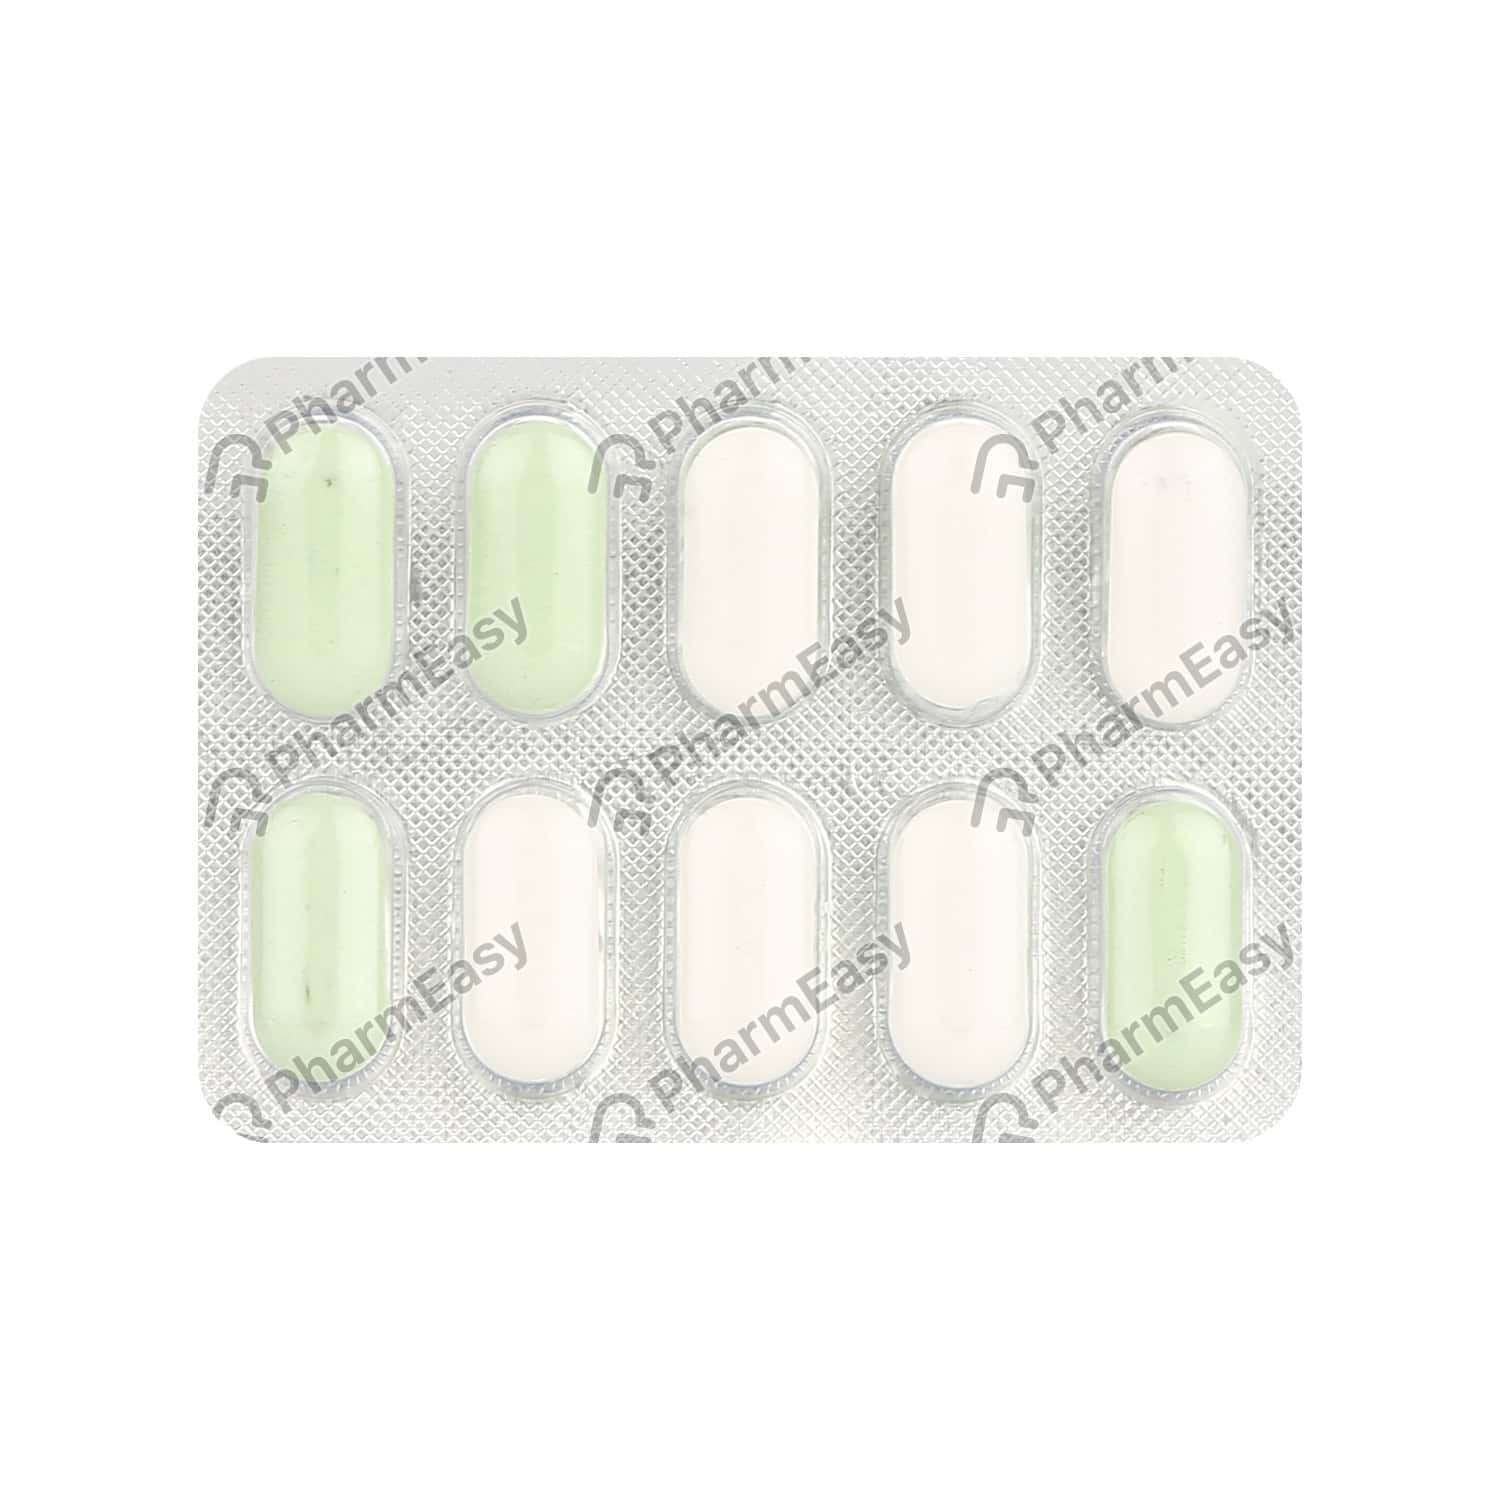 Gluconorm G Plus 3mg Tablet 10's